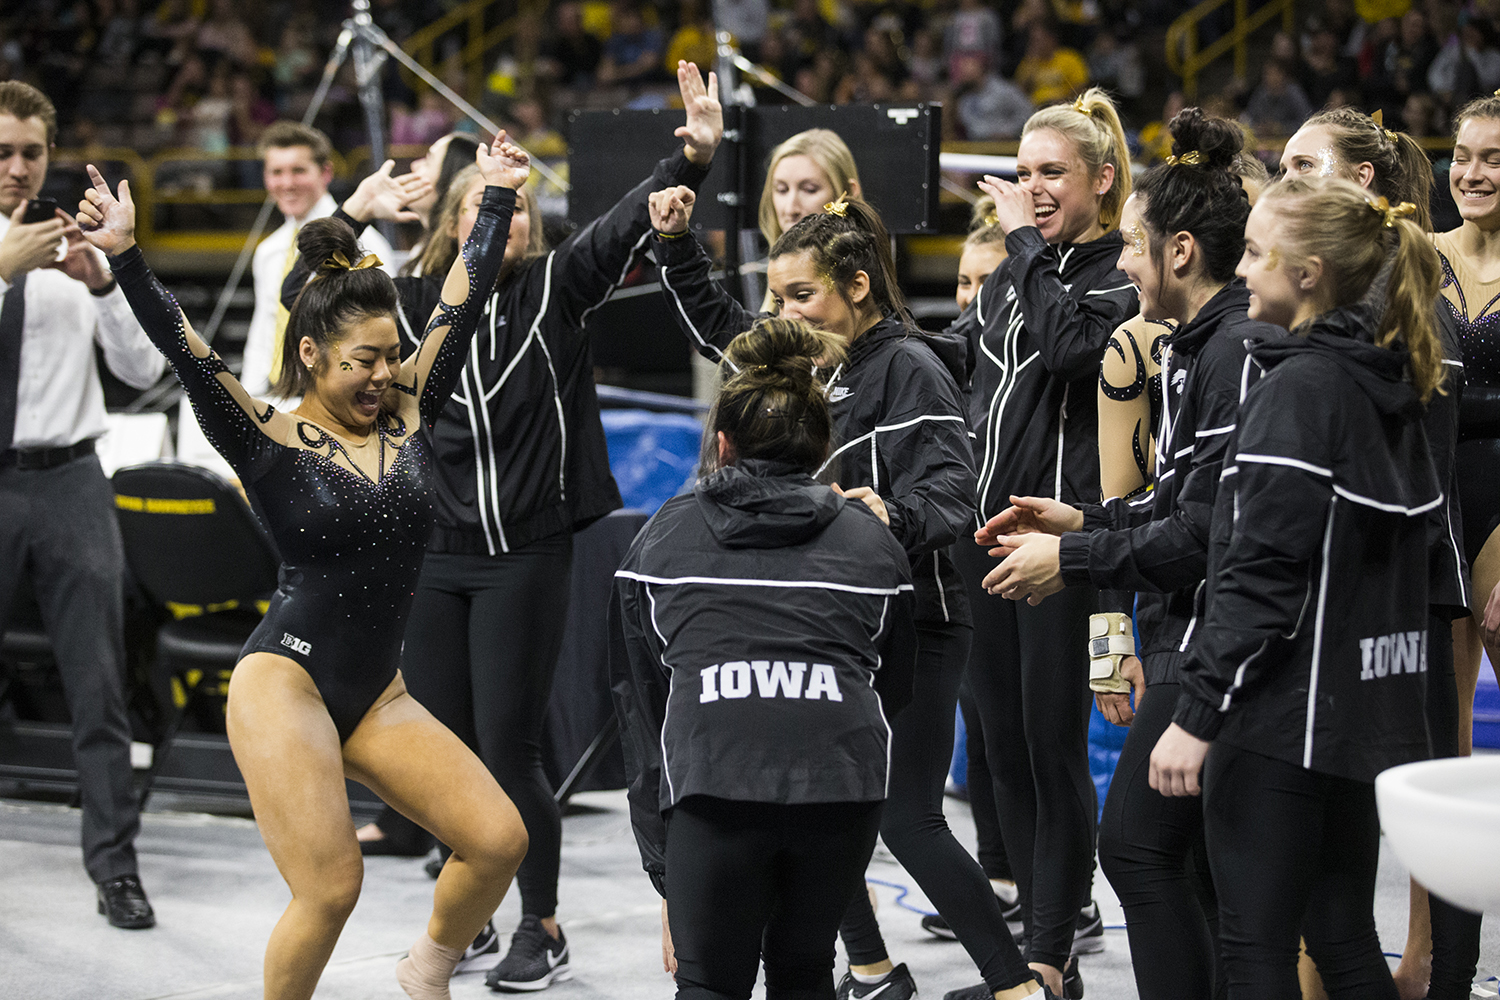 Iowa+gymnasts+celebrate+after+their+performances+during+women%27s+gymnastics+vs.+SEMO+at+Carver-Hawkeye+Arena+on+Friday%2C+January+11%2C+2019.+The+GymHawks+defeated+the+Redhawks+194.700-180.925.+